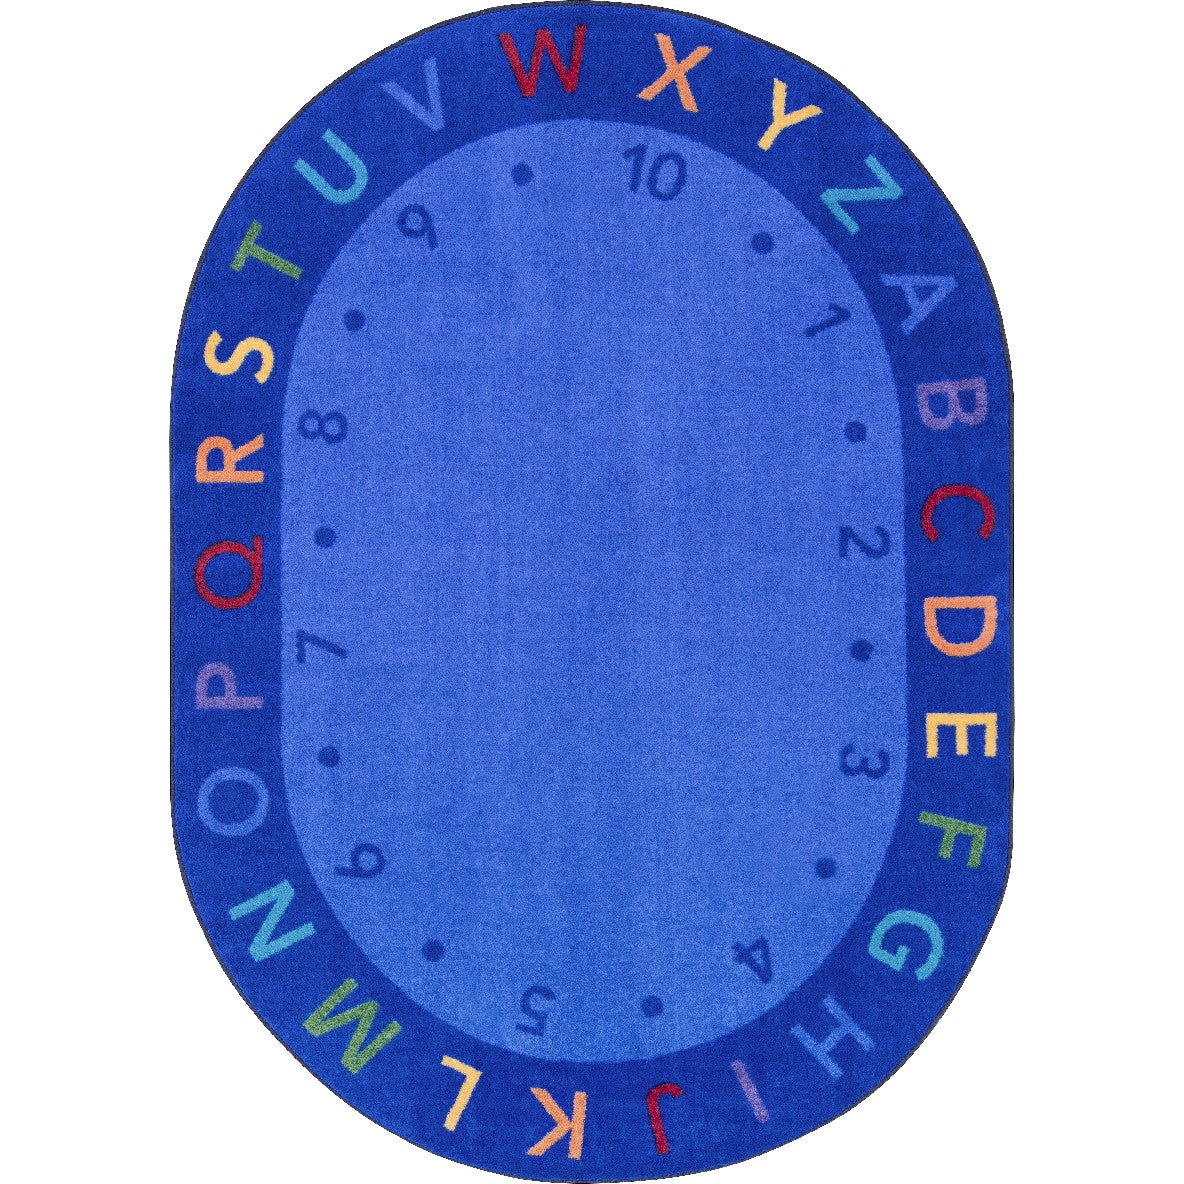 Lively Letters Area Rug - Flooring Mats and Turf